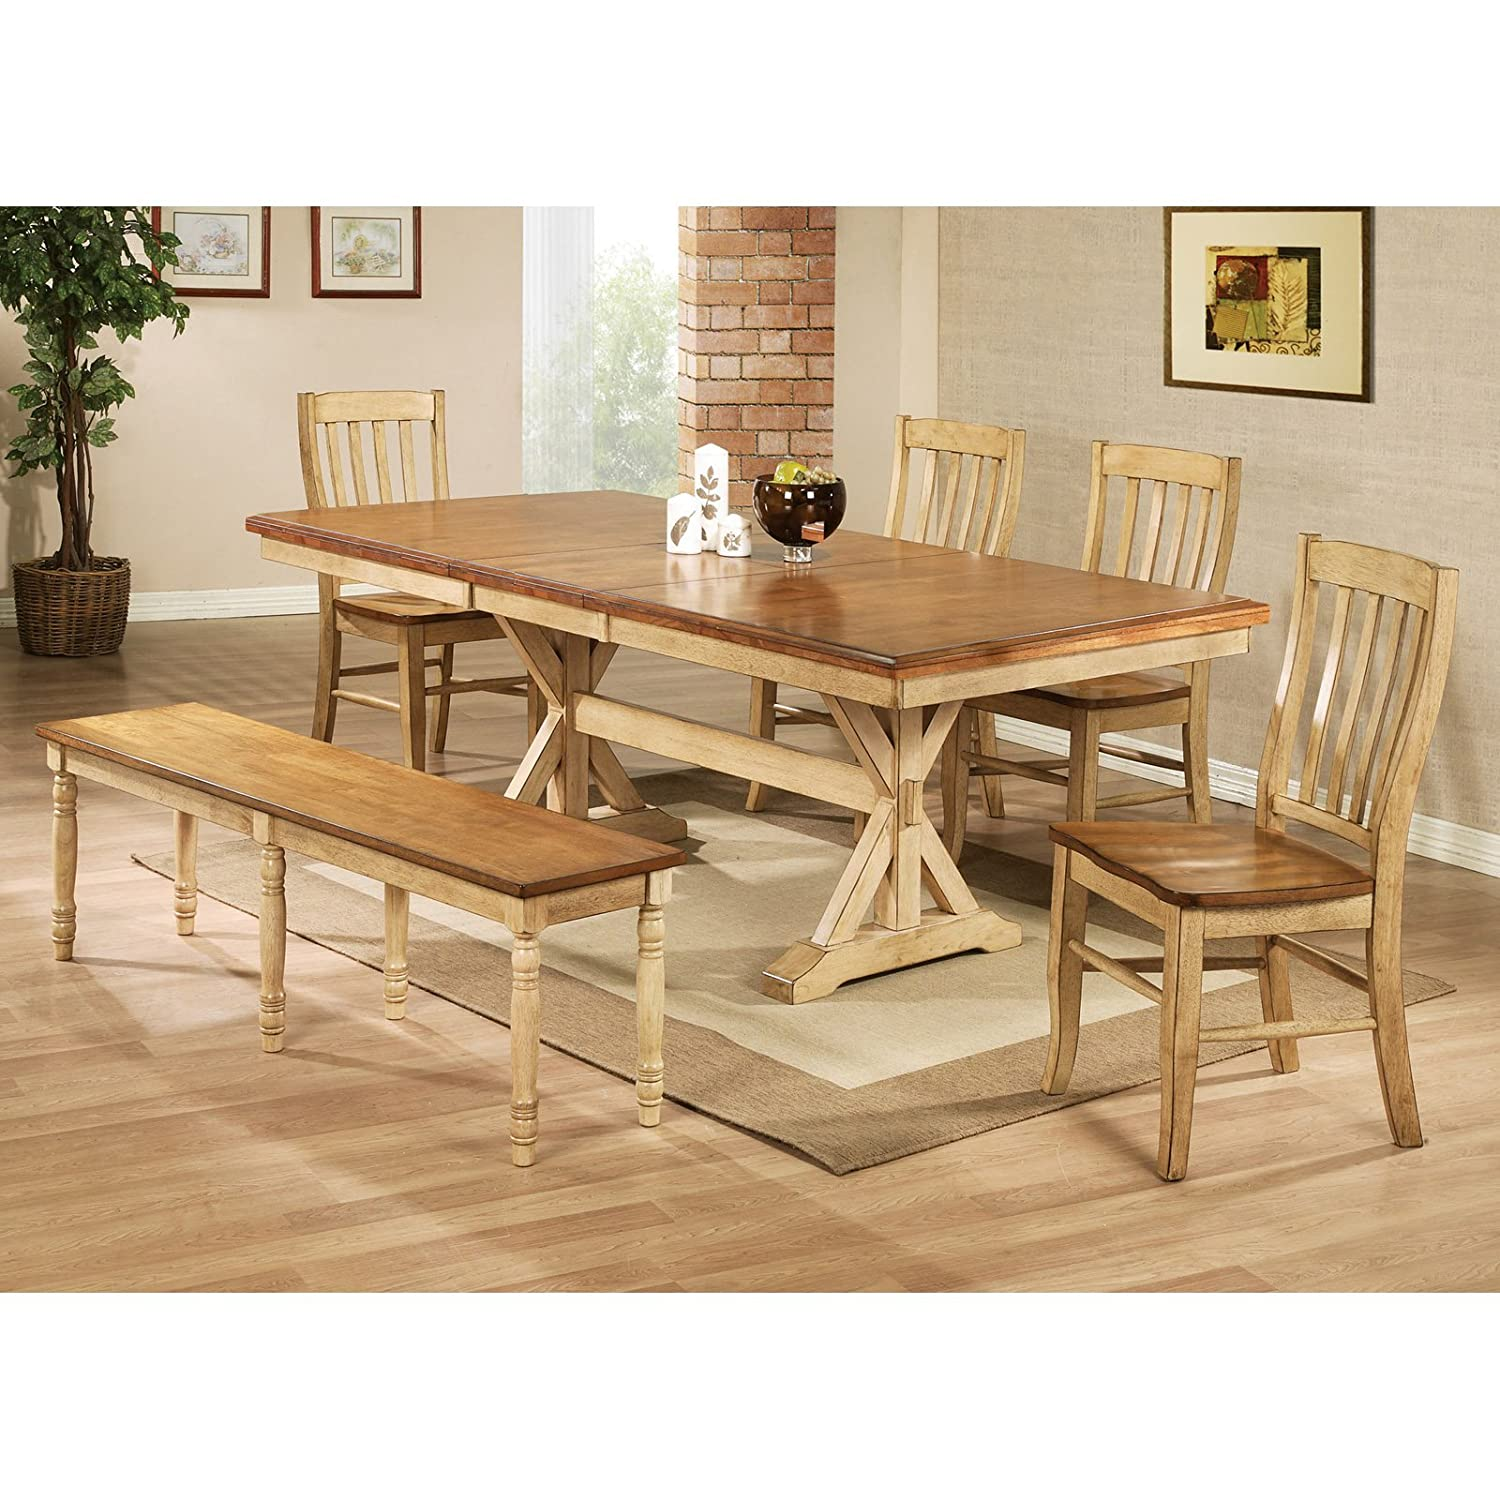 Amazon.com - Winners Only Quails Run 84 in. Trestle Dining Table ...